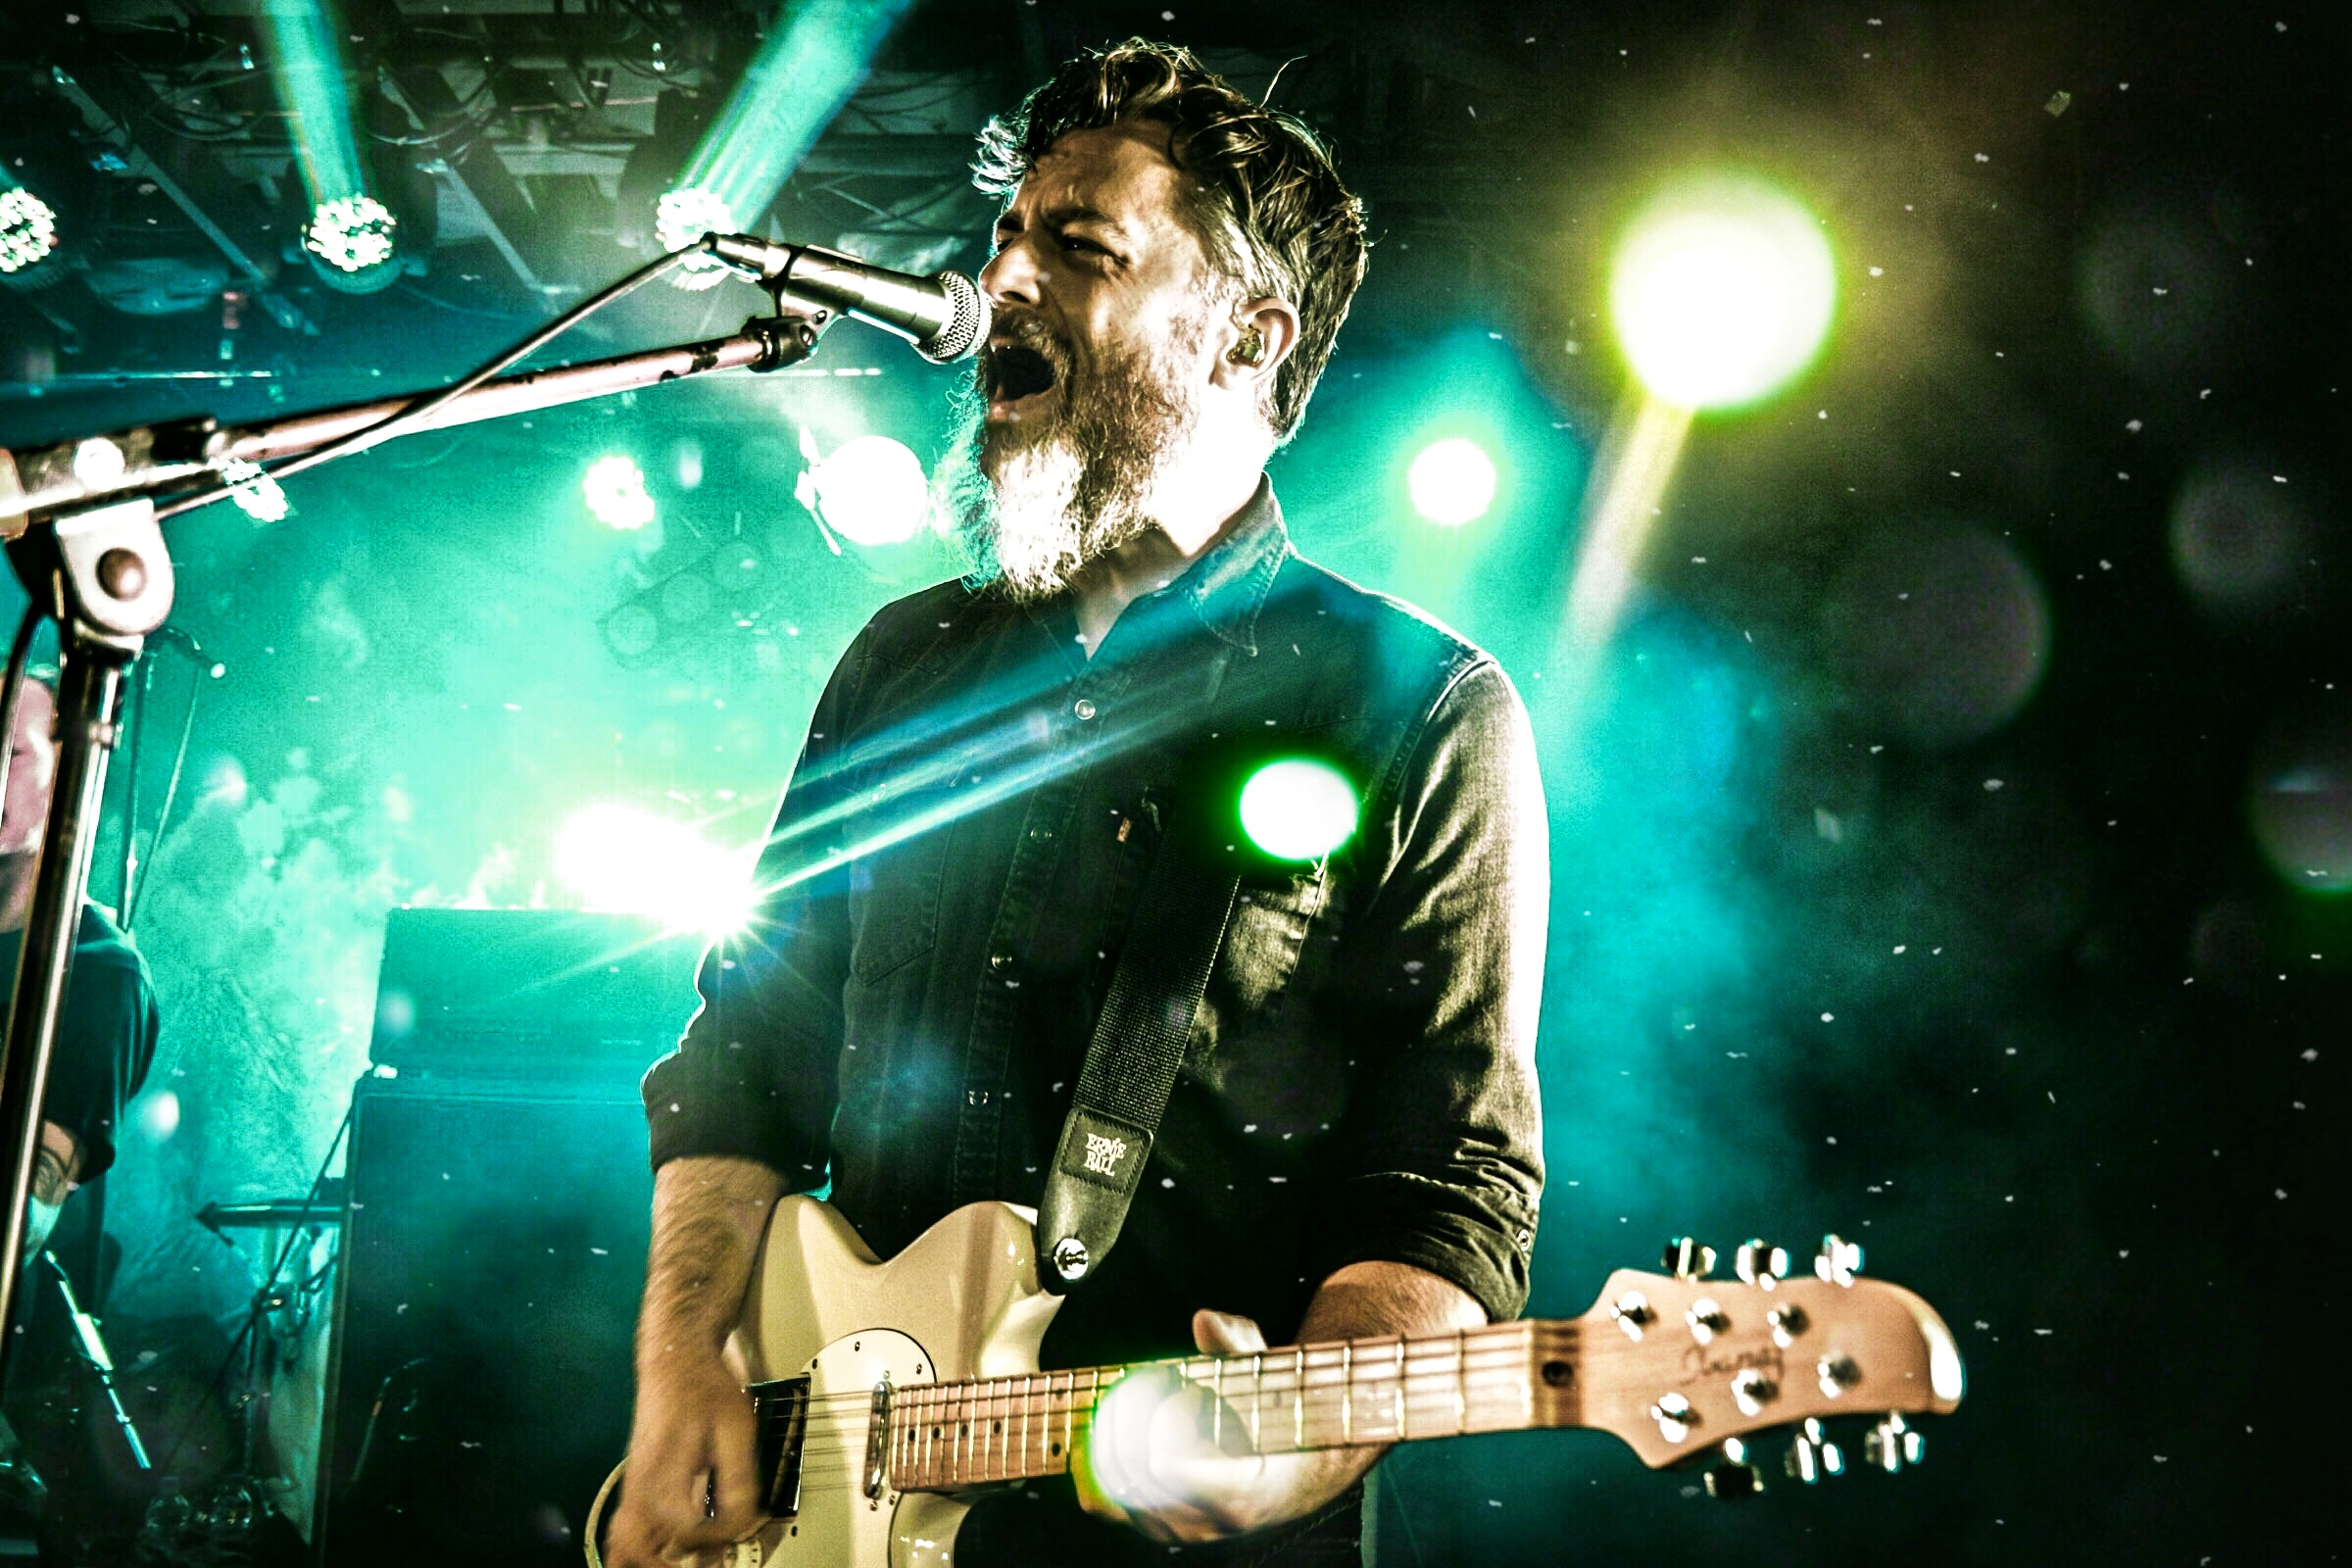 Copy of MINUS THE BEAR PHOTO SET